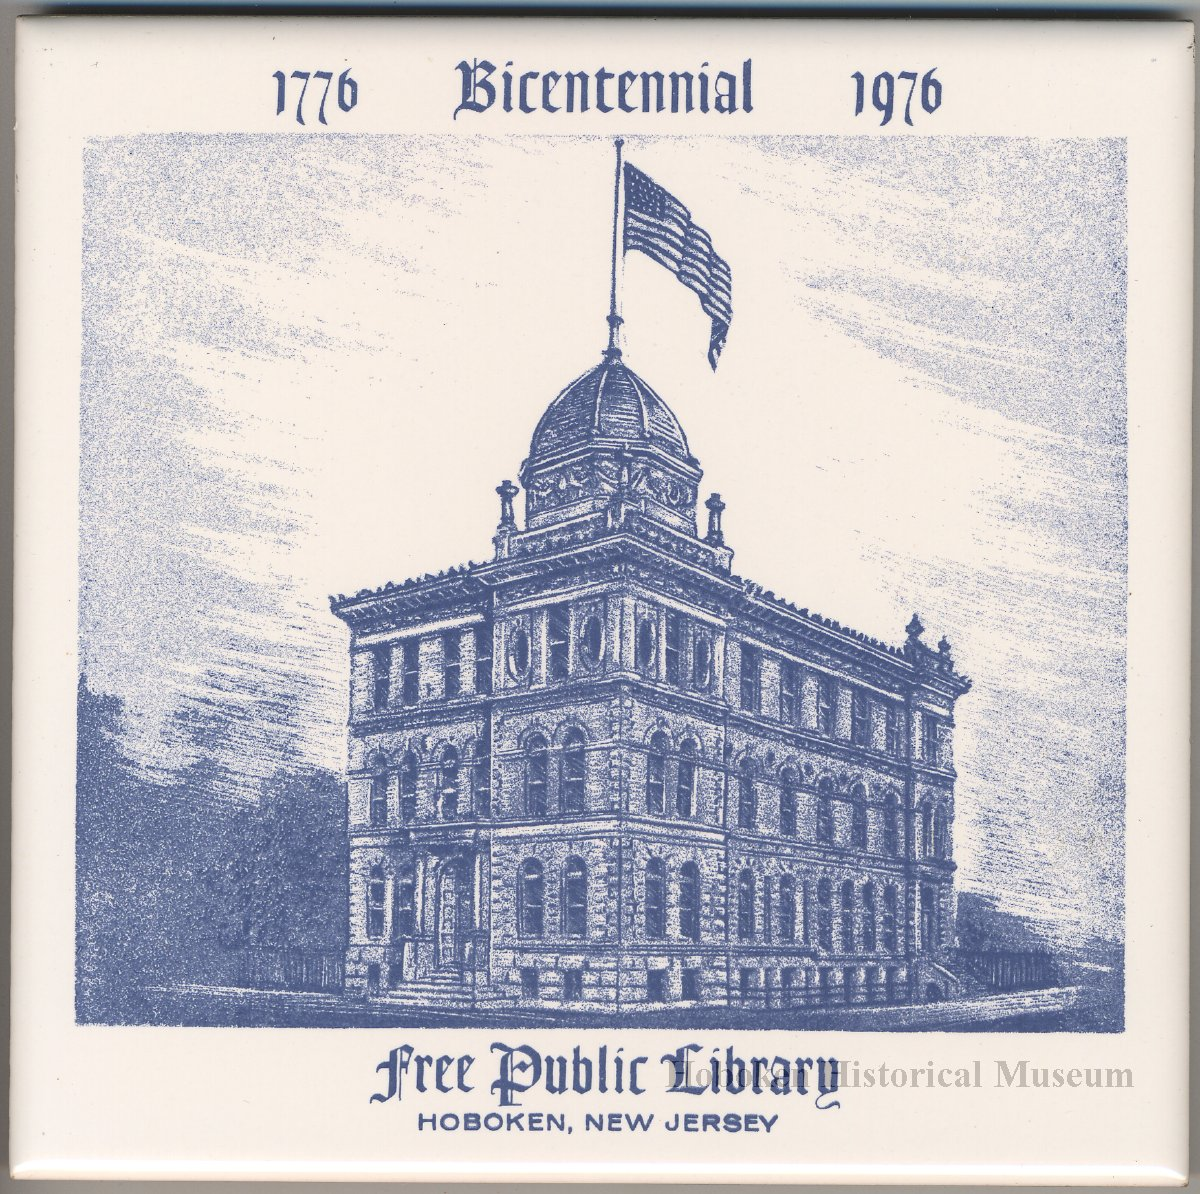 Ceramic commemorative tile, 1776-1976 Bicentennial, Free Public